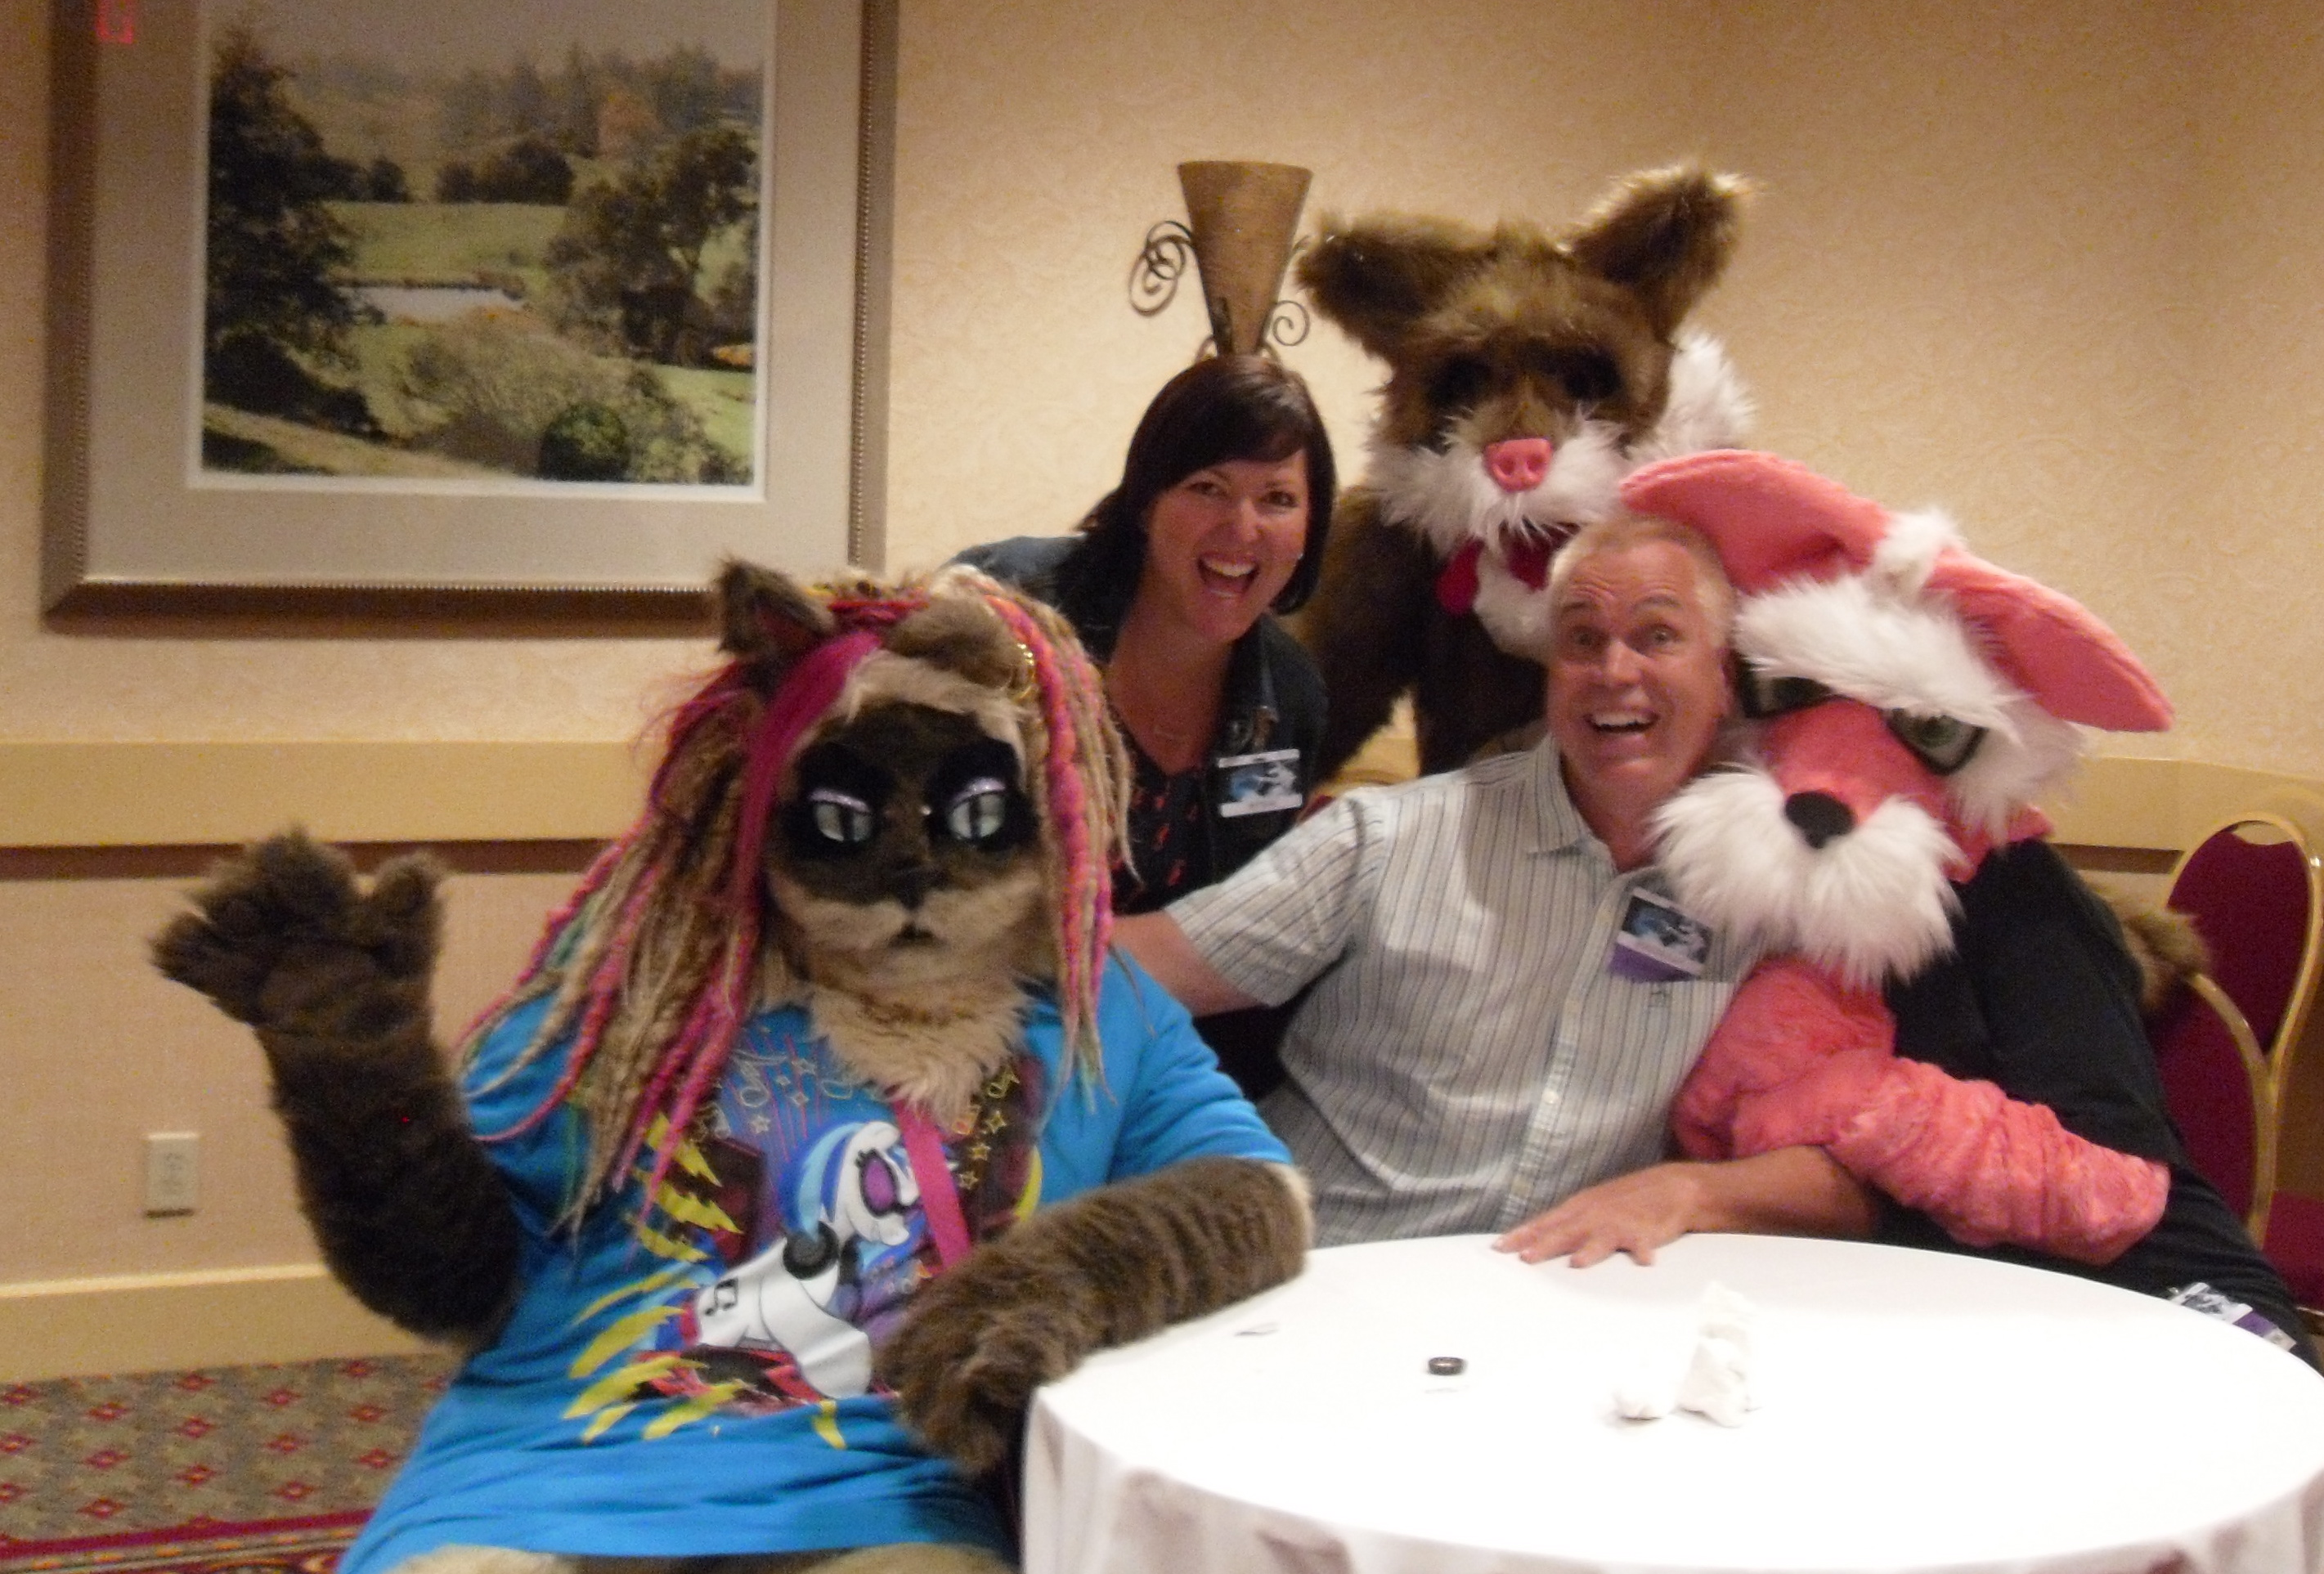 furries | groovydelight